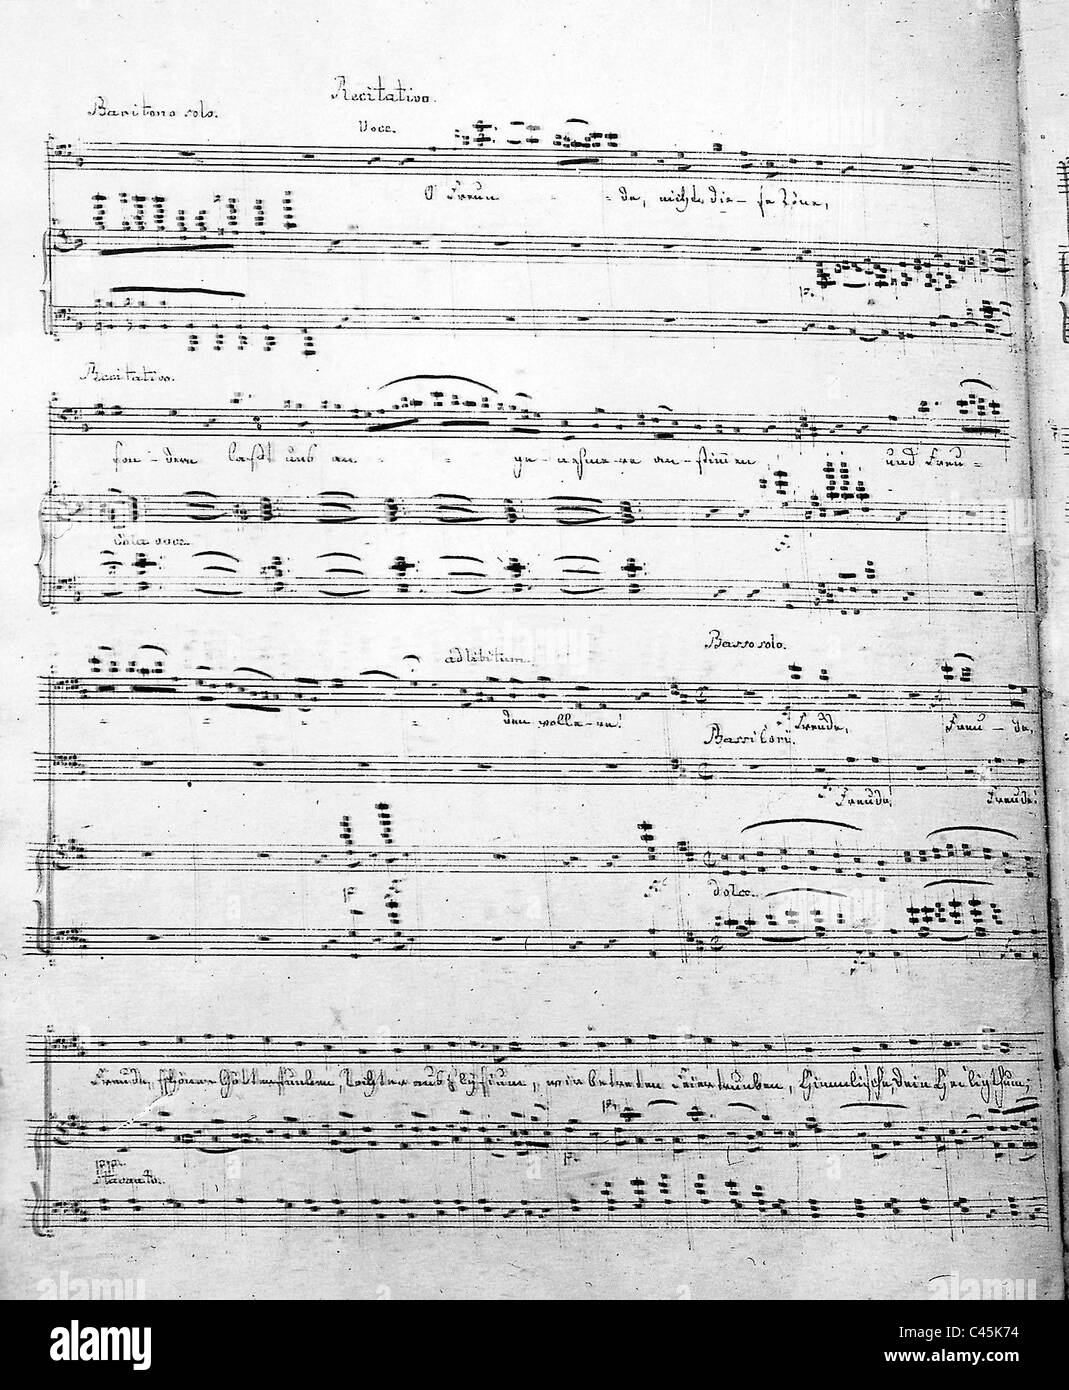 Copy of a score form the 9th Symphony by Ludwig van Beethoven - Stock Image